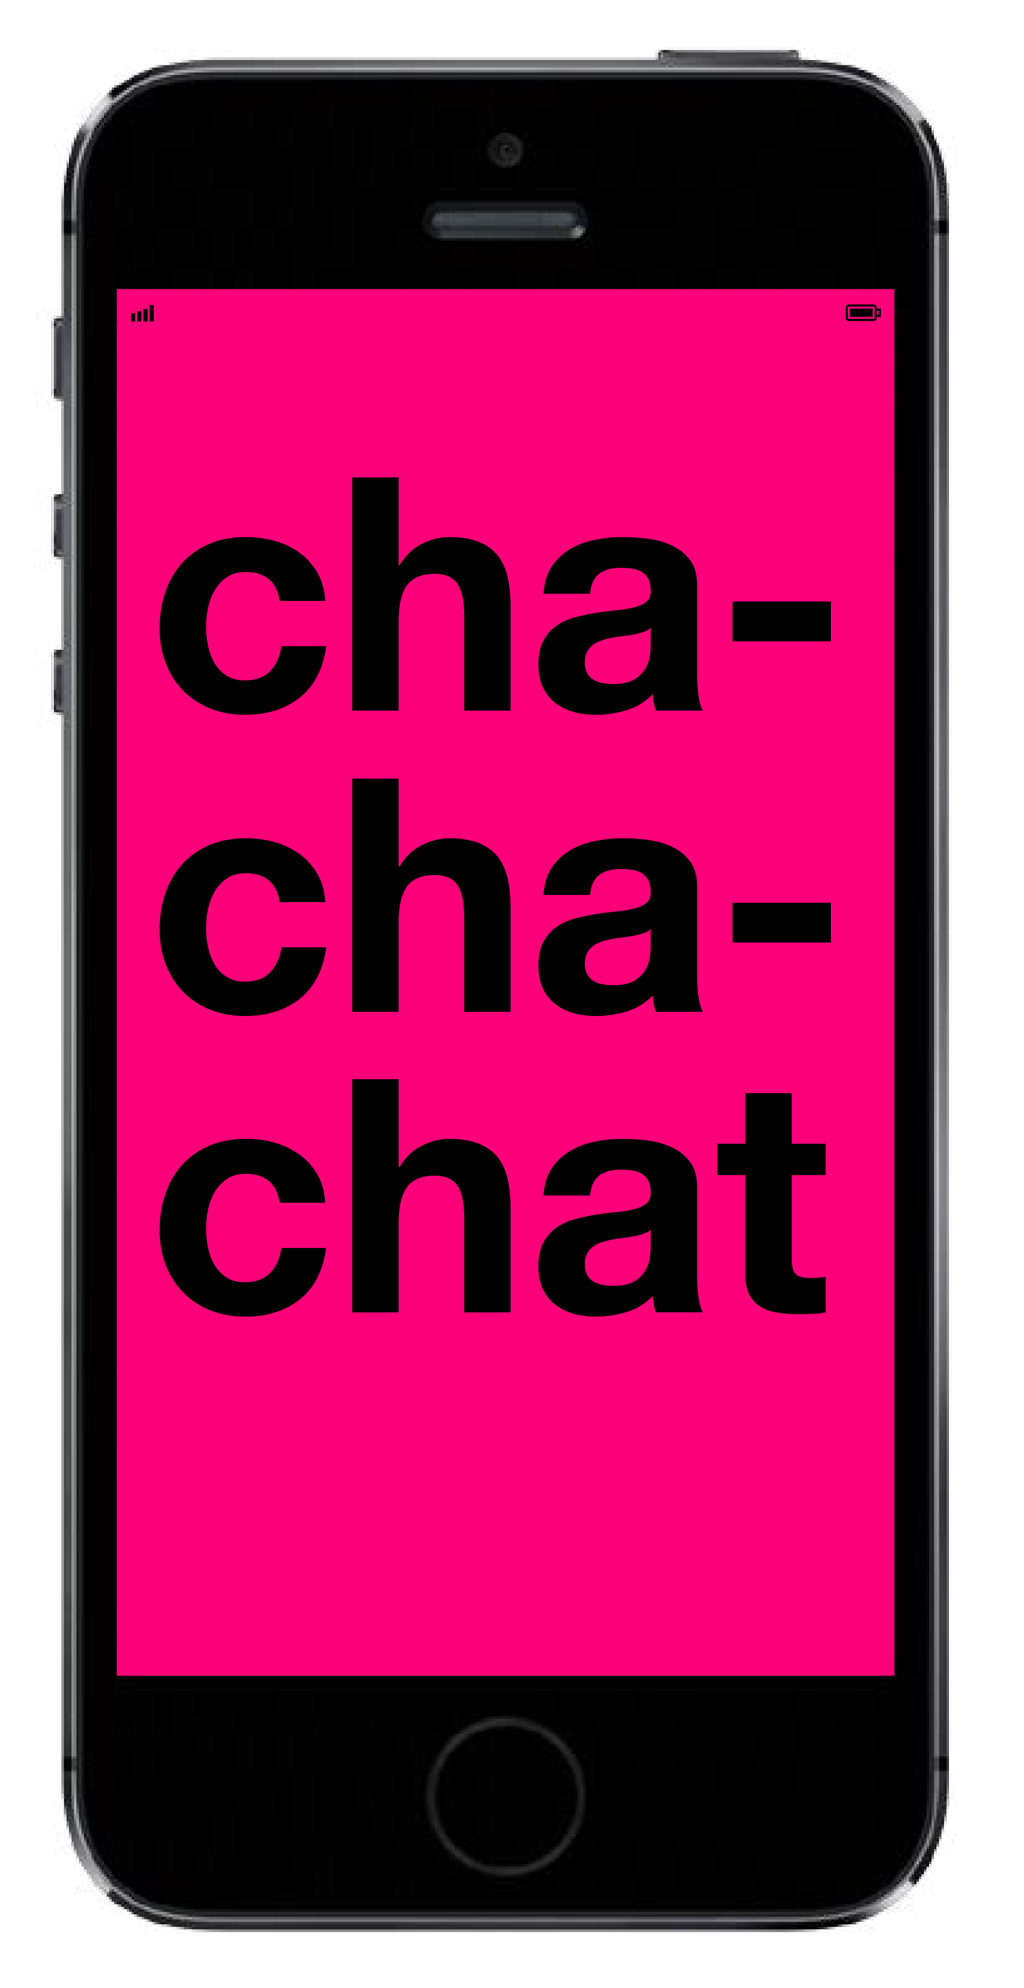 Chachachat – A new way to chat and flirt